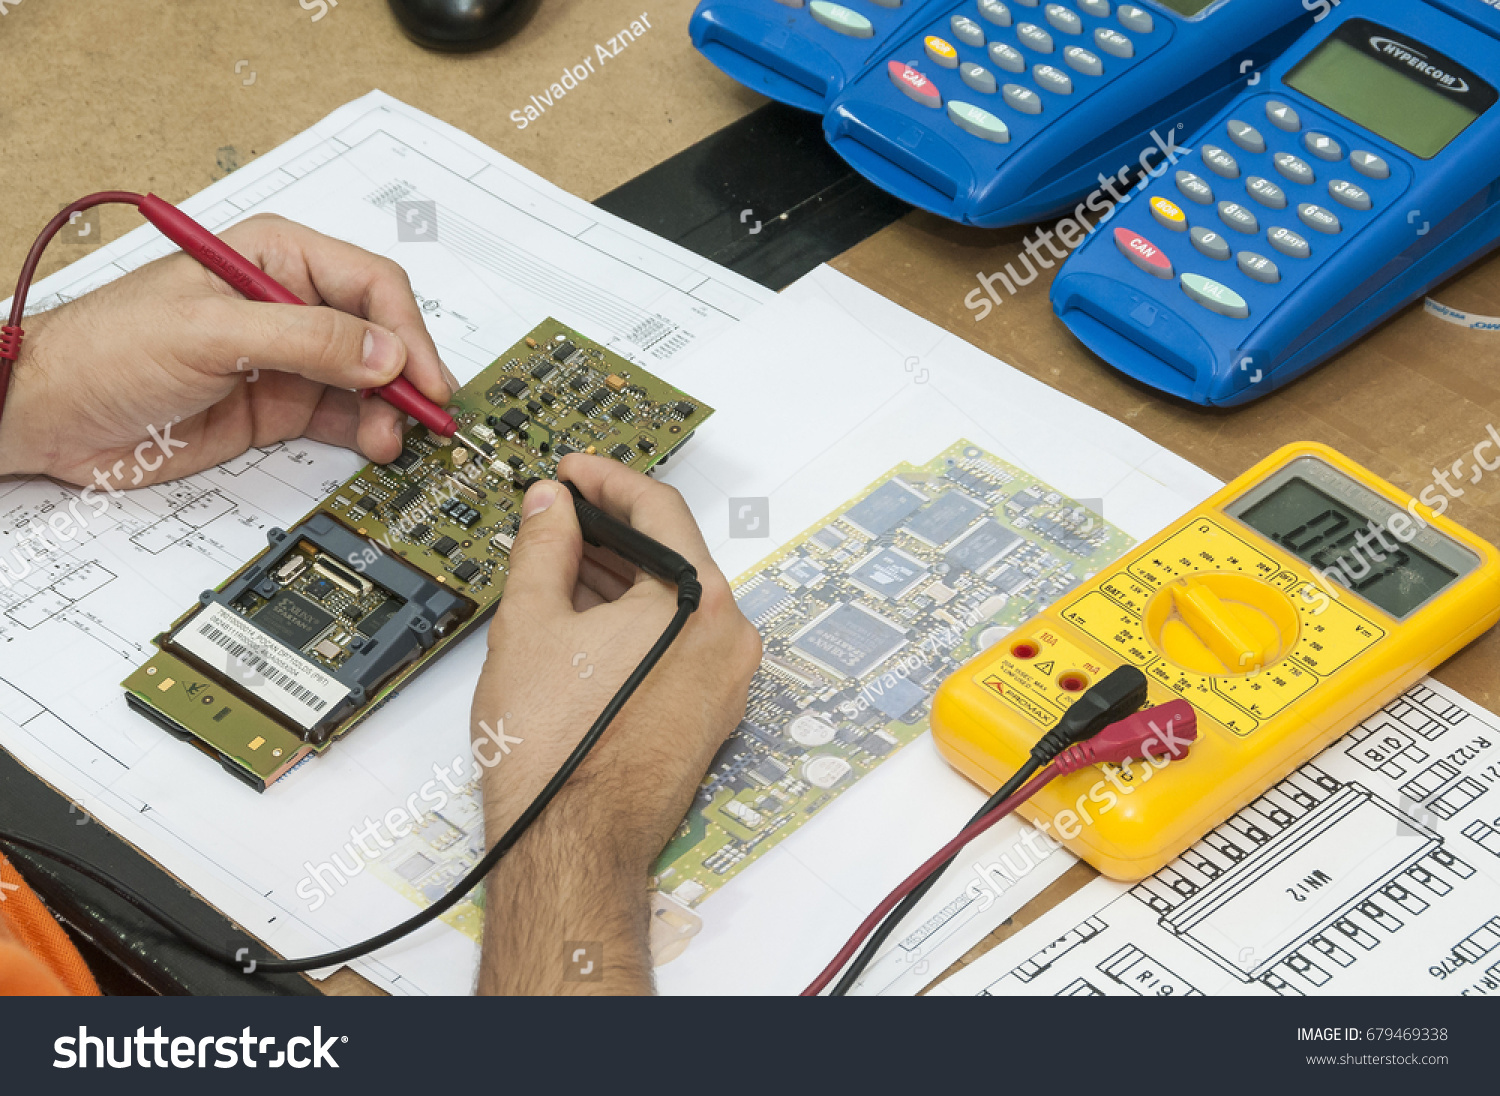 Tenerife Canary Islands November 12 2010 Stock Photo Edit Now Electronic Circuit Detailed View Of The Hands